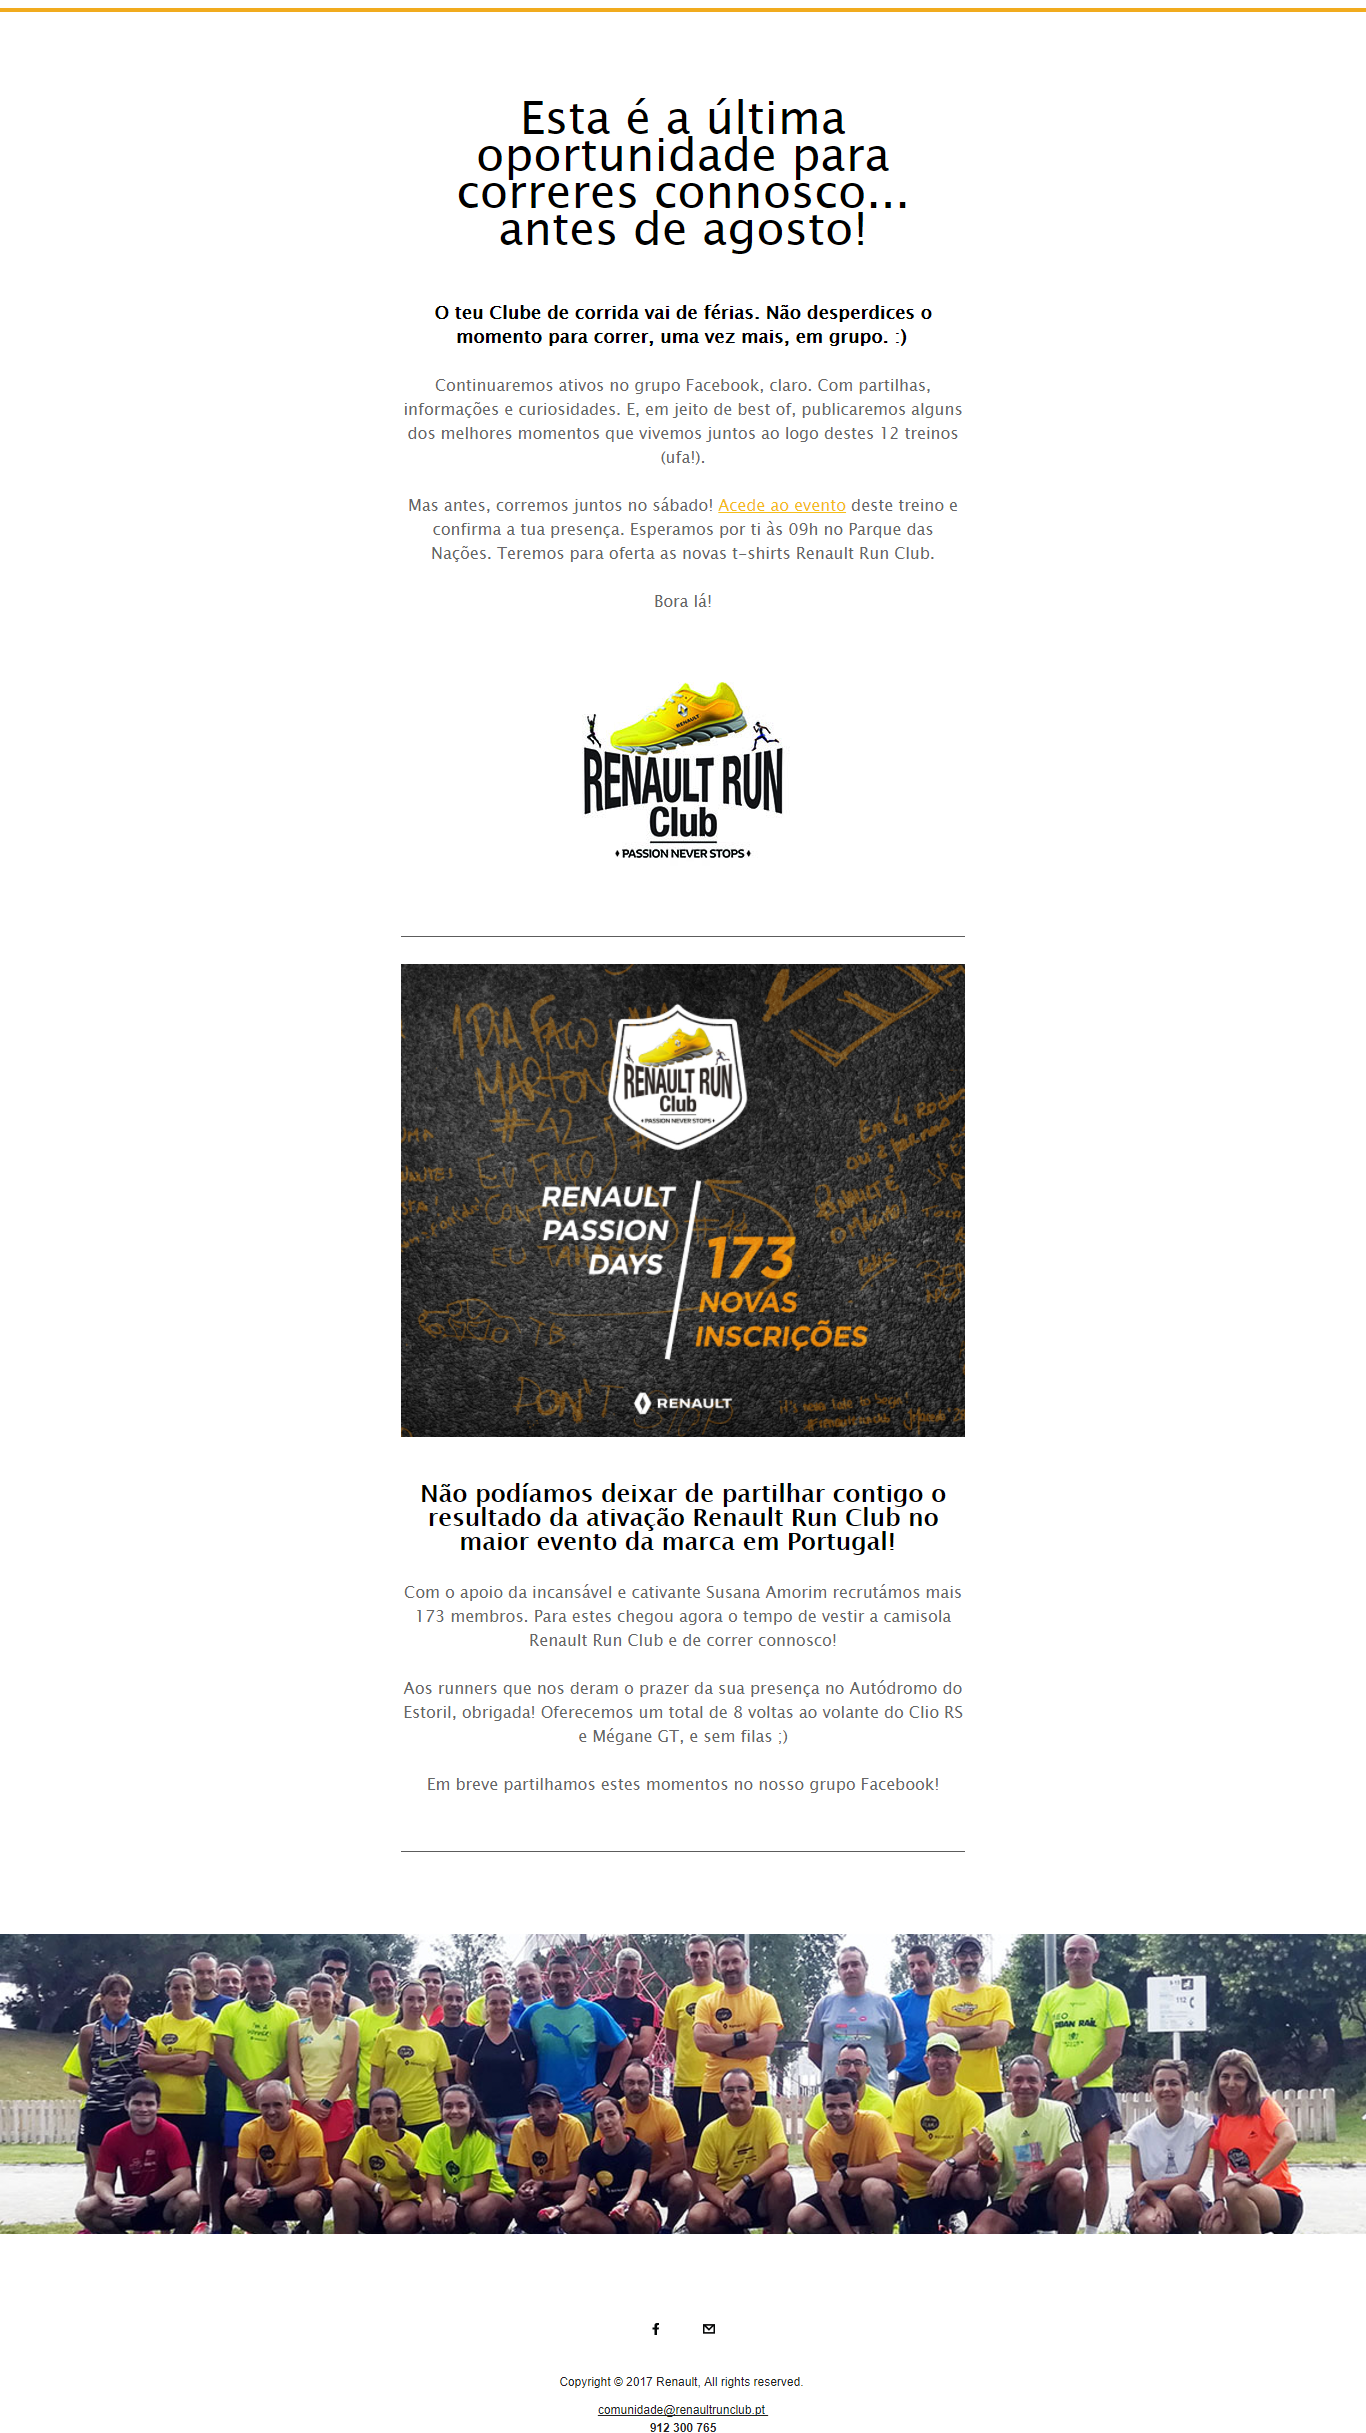 Renault Run Club | Email marketing